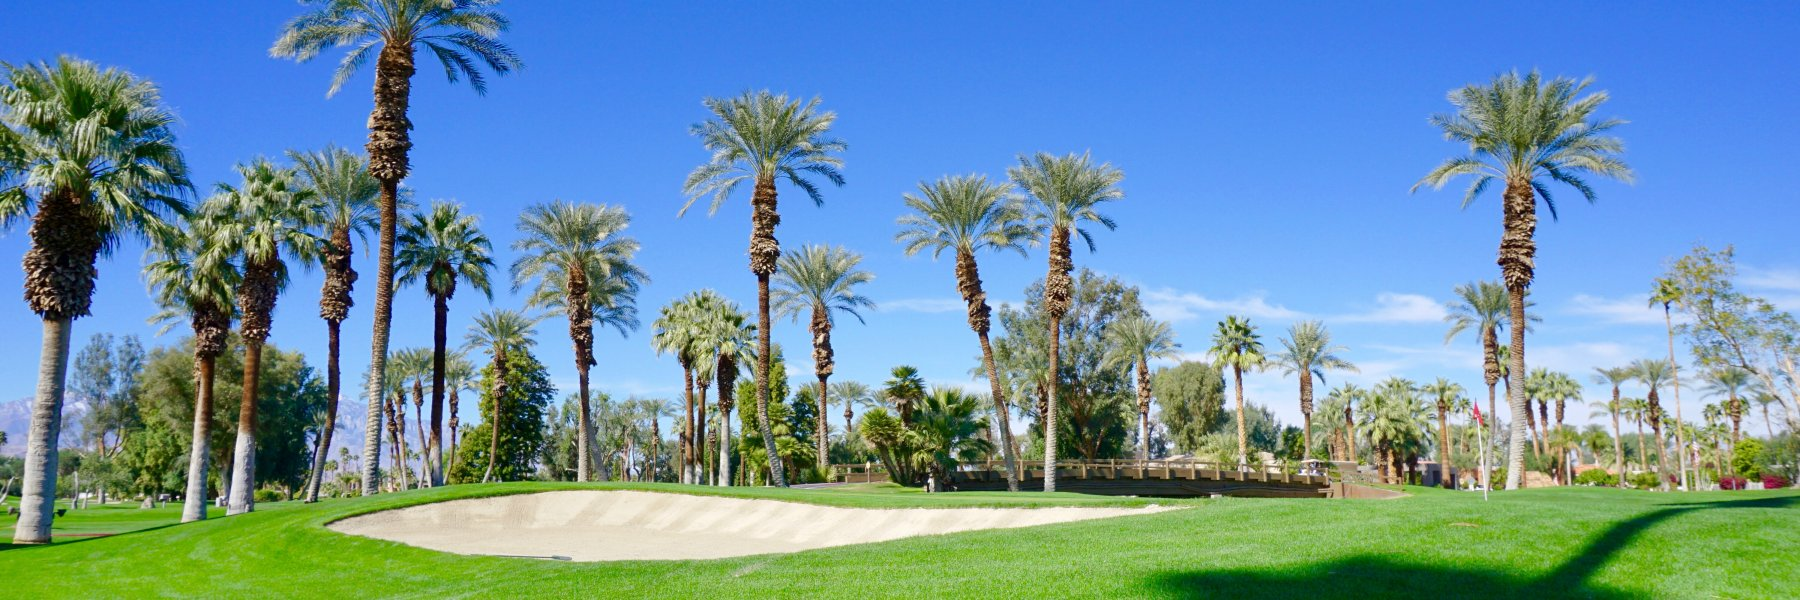 Indian Wells Country Club is a community of homes in Indian Wells, California